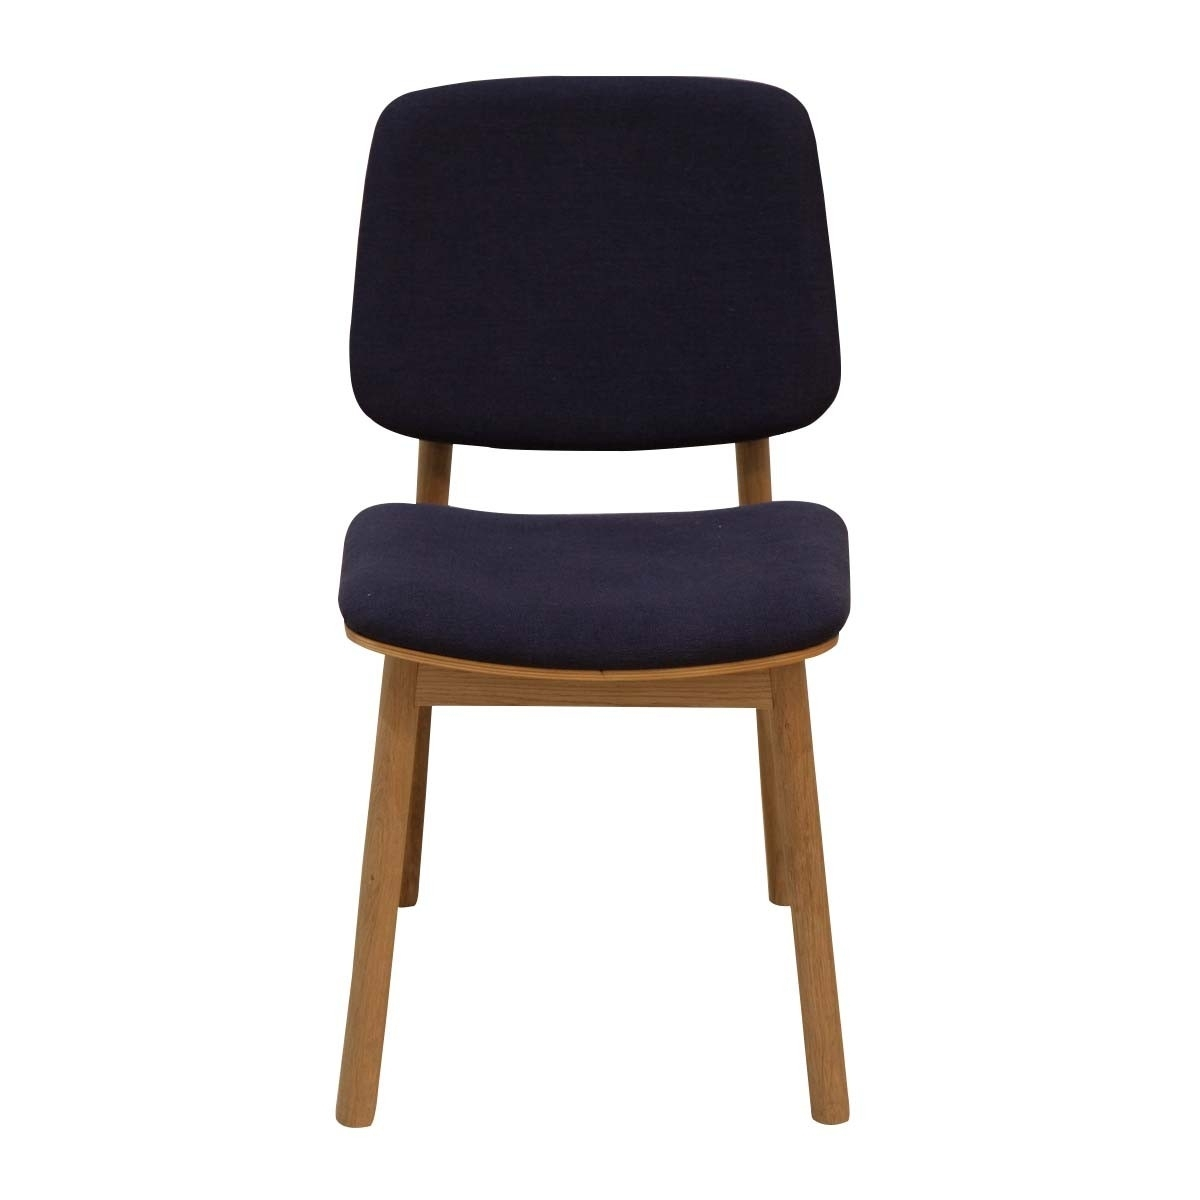 Fashionable Life Interiors – Whywood Dining Chair (oak, Charcoal) – Modern Pertaining To Charcoal Dining Chairs (View 4 of 20)